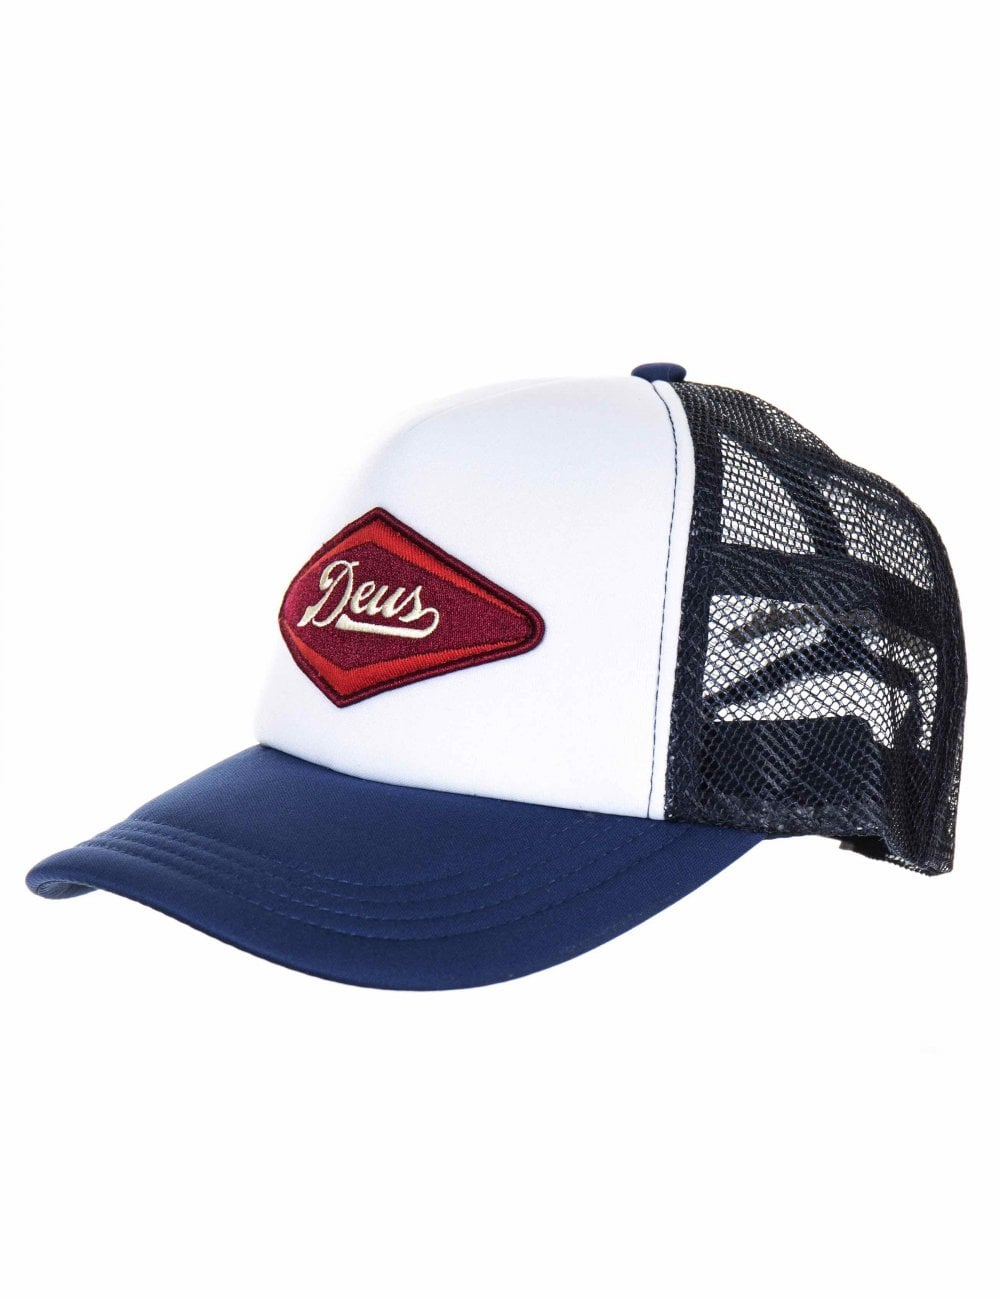 17c7cb1d8ea Deus Ex Machina Diamond Trucker Hat - Navy - Accessories from Fat Buddha  Store UK